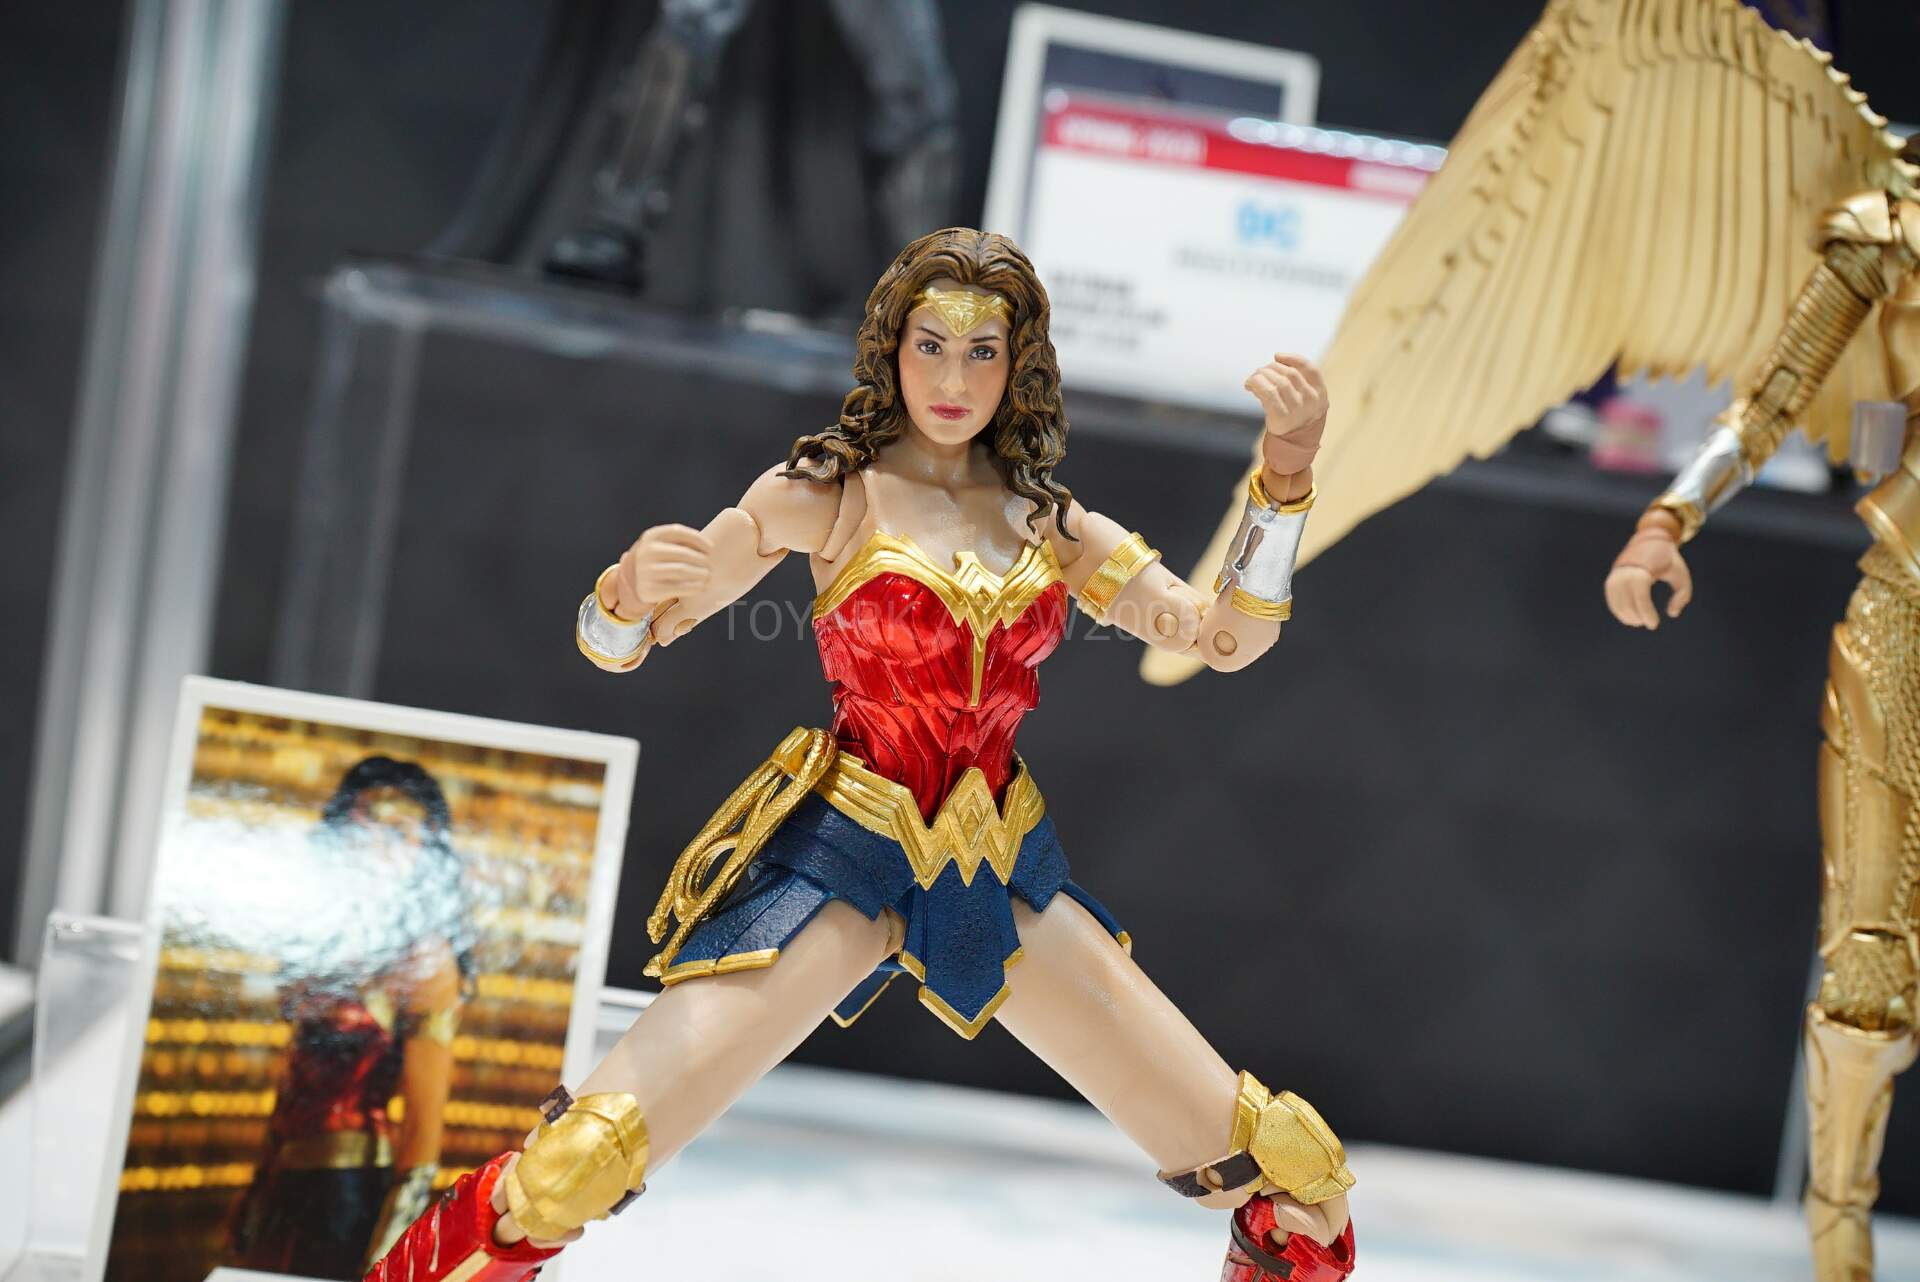 Toy-Fair-2020-McFarlane-DC-034.jpg